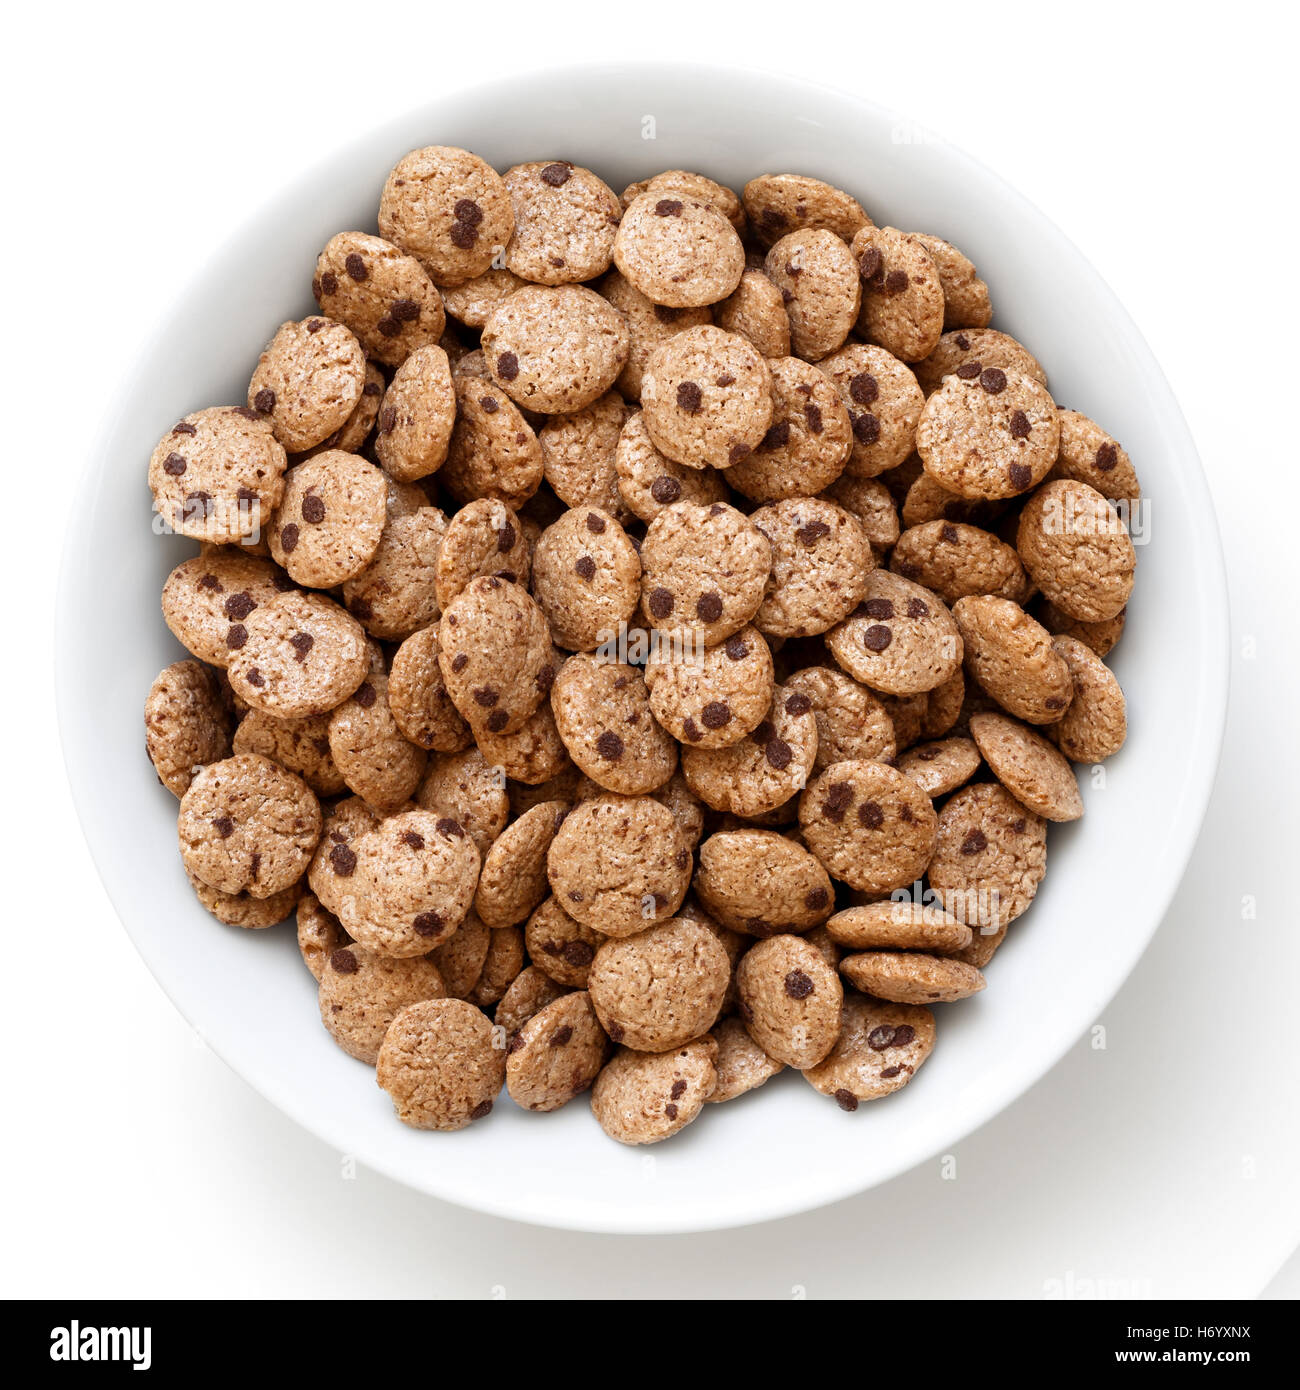 Bowl Of Chocolate Chip Cookies Cereal Isolated On White